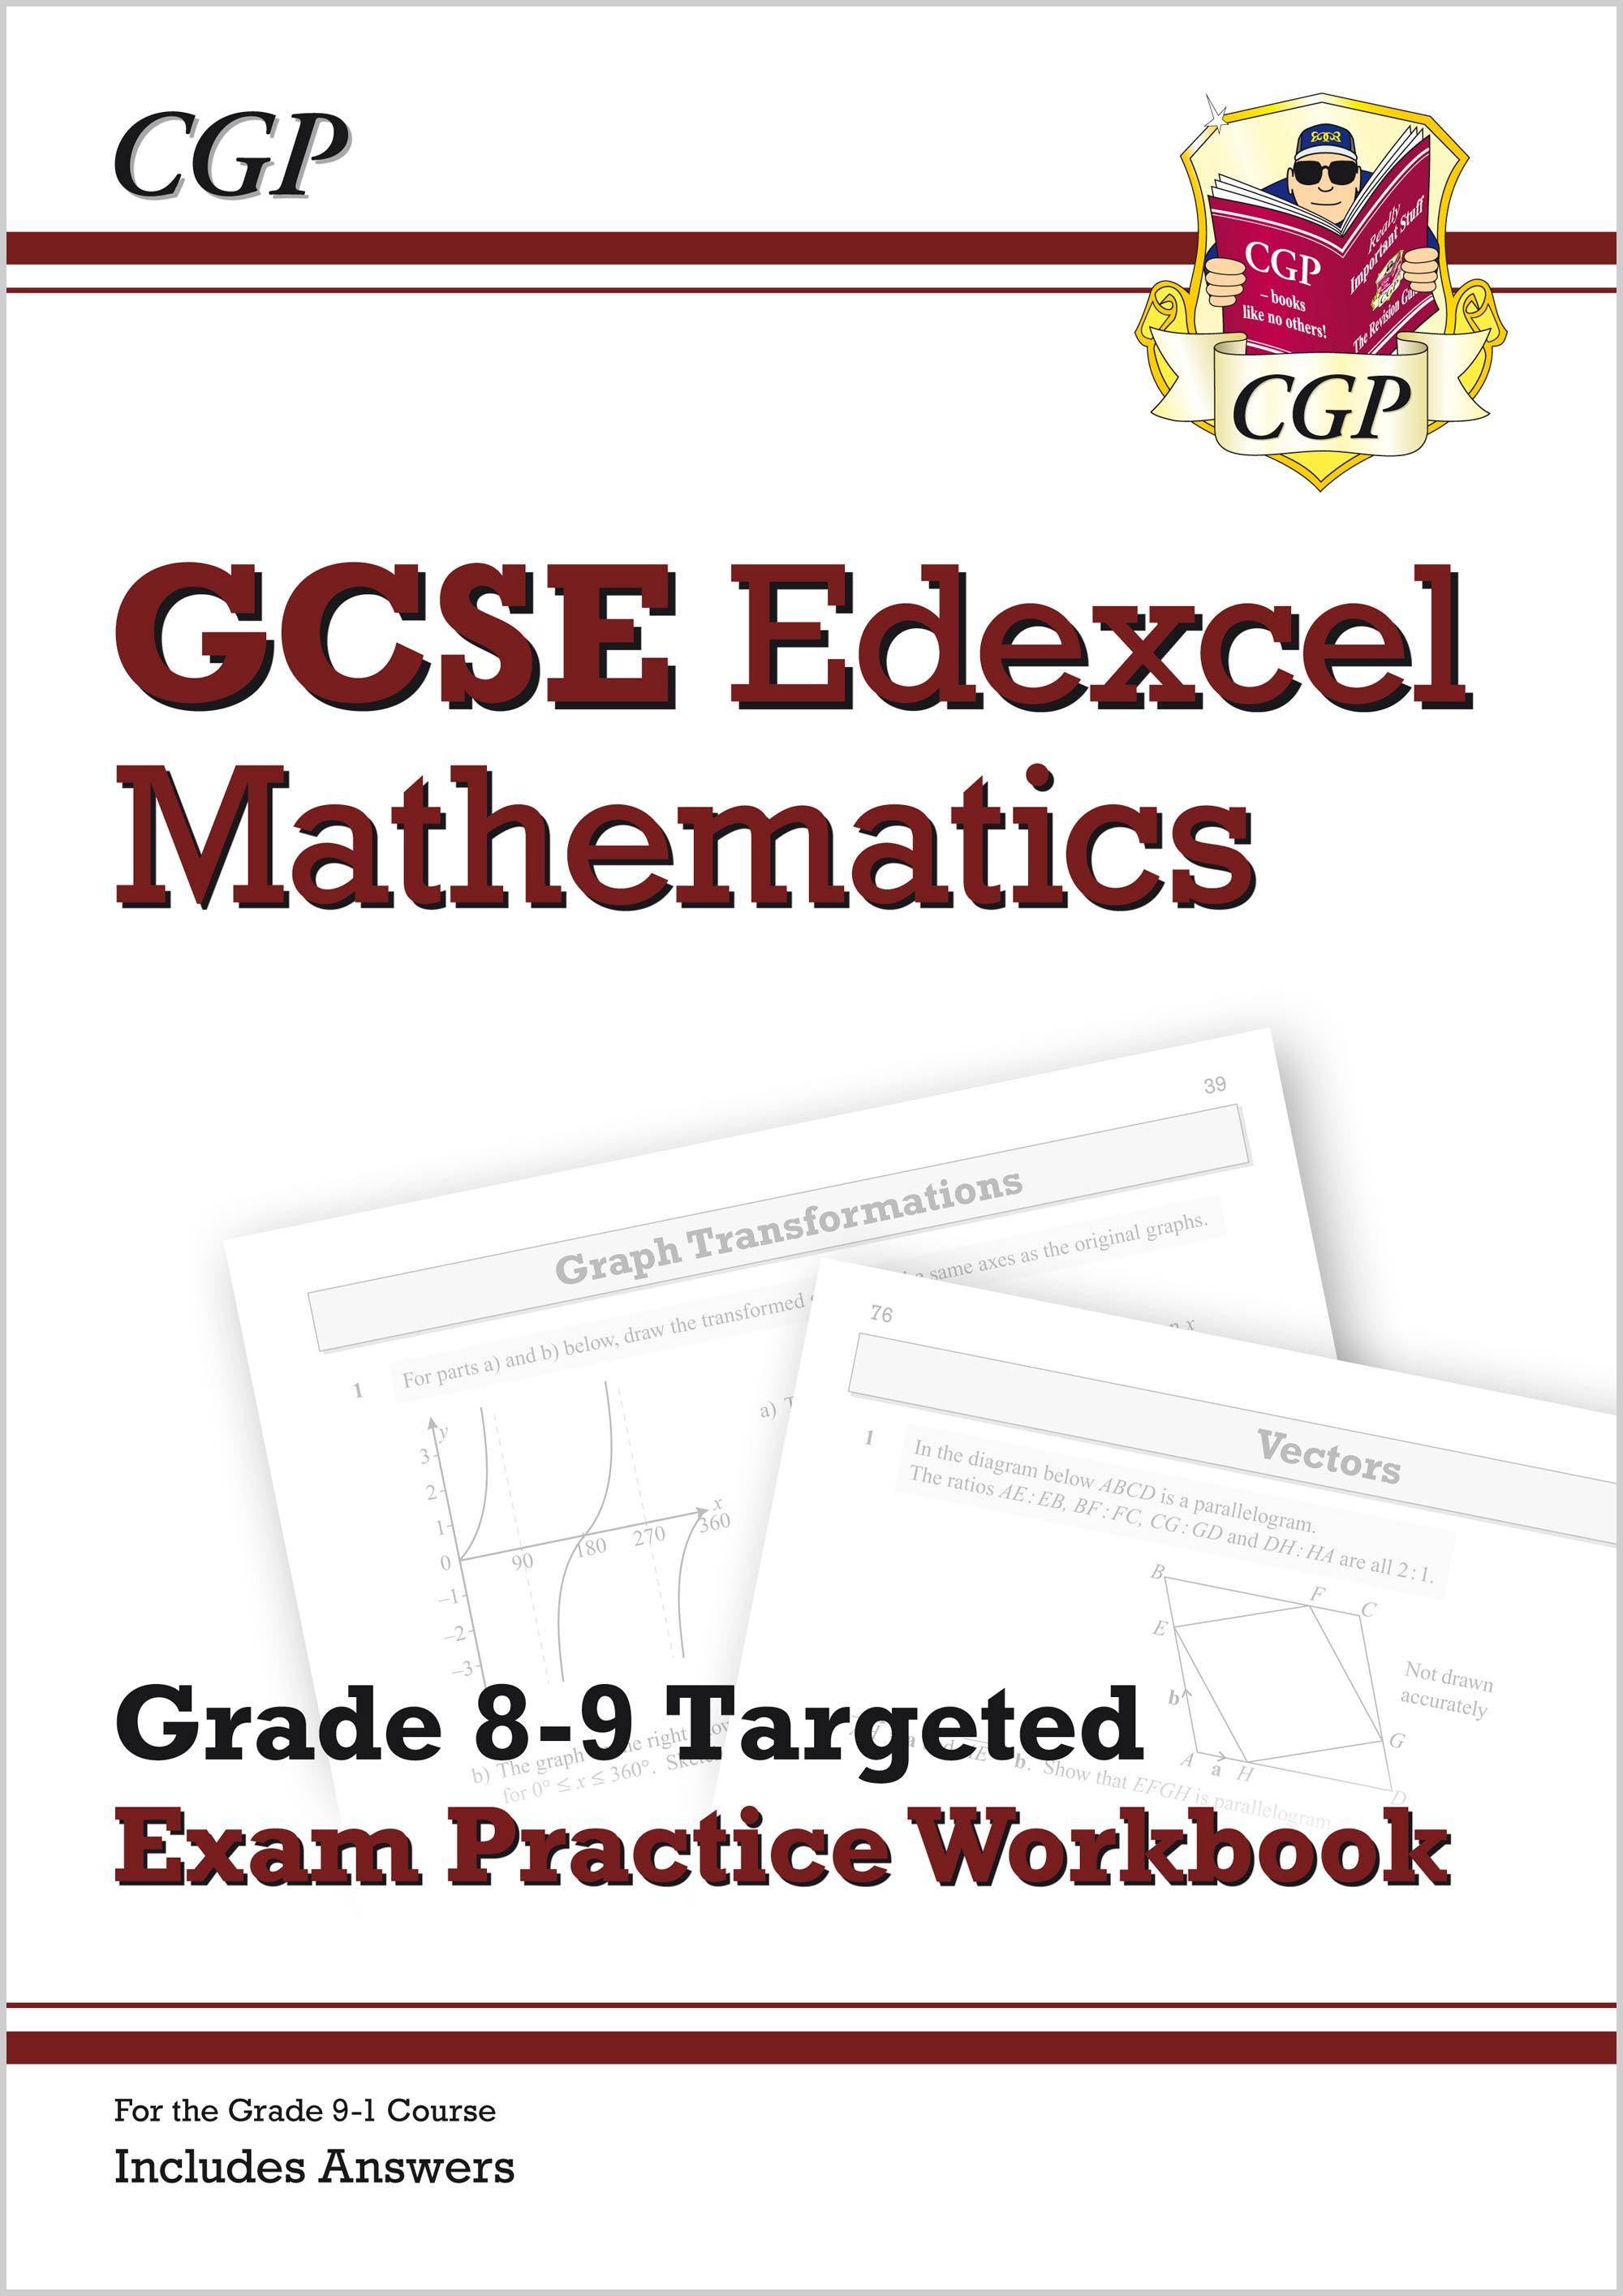 GCSE Maths Edexcel Grade 8-9 Targeted Exam Practice Workbook (includes  Answers)